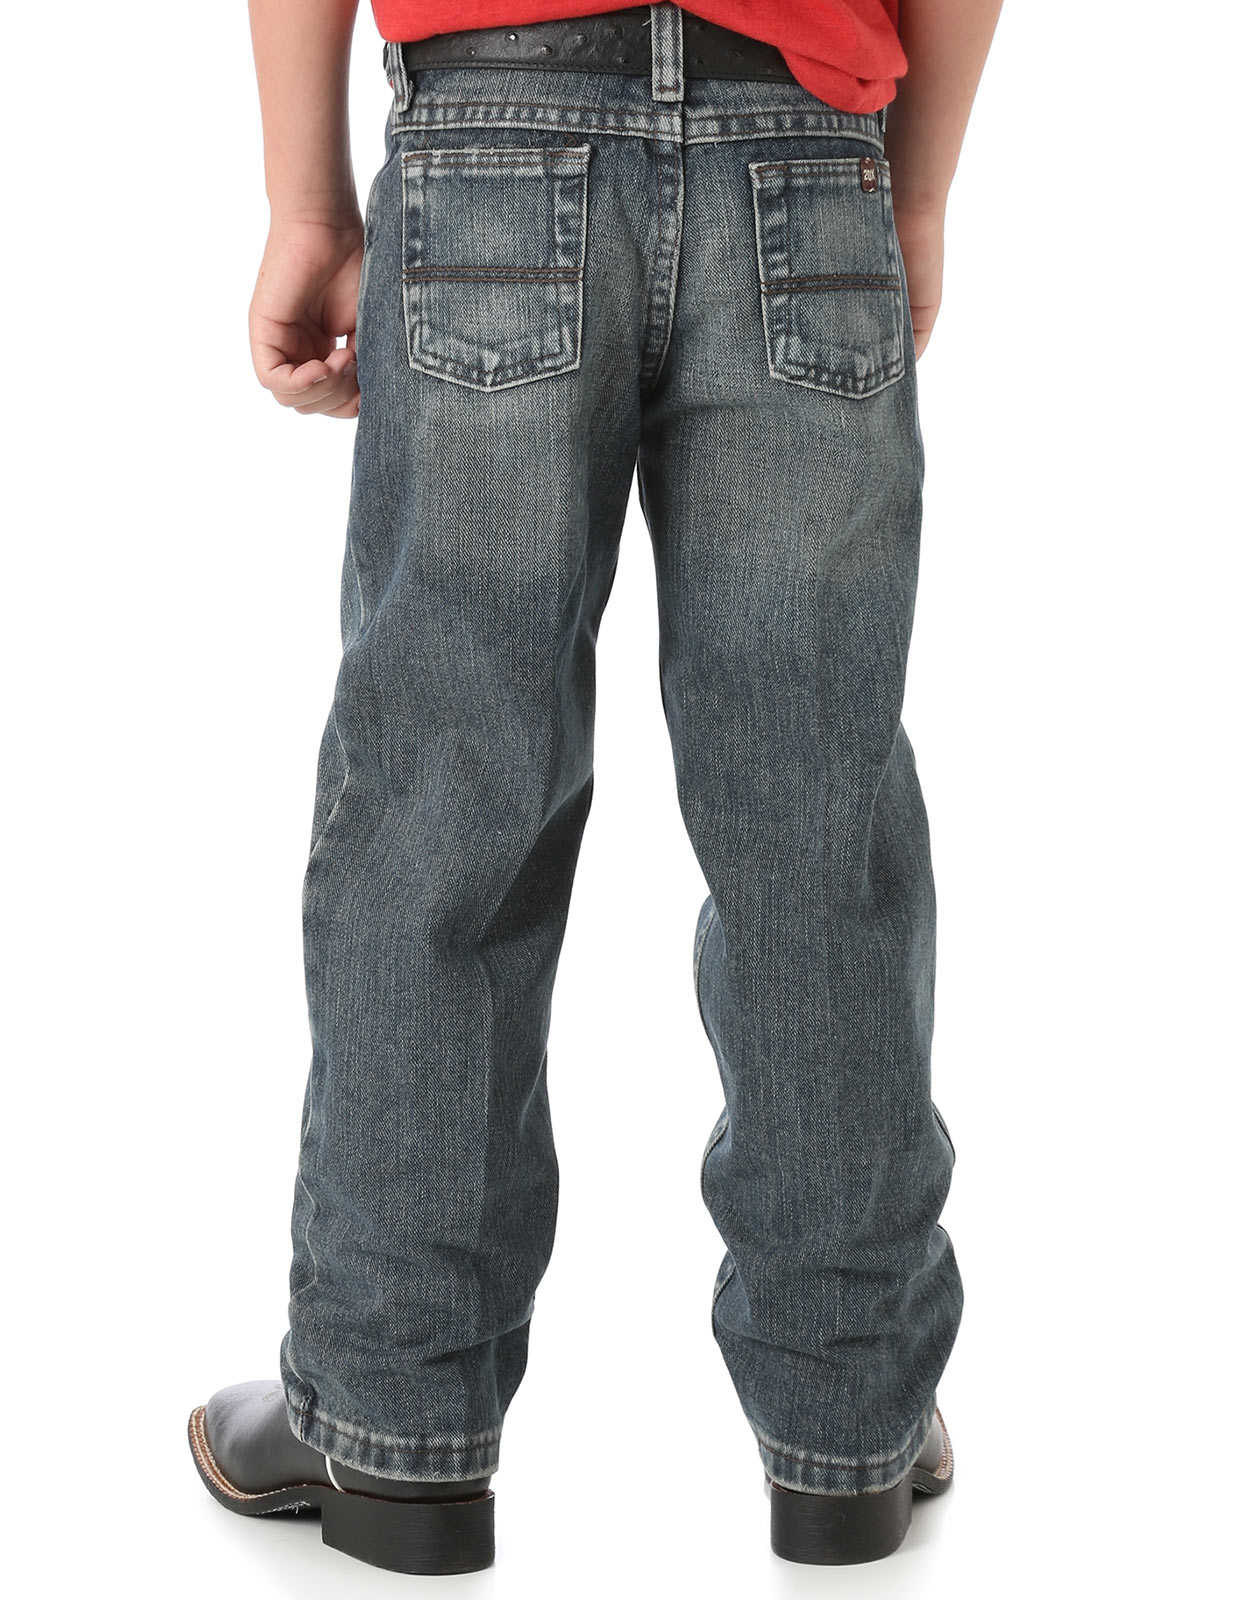 Wrangler Boy's 20X 33 Extreme Mid Rise Loose Fit Straight Leg Jeans (Sizes 8-20) - Vintage Midnight